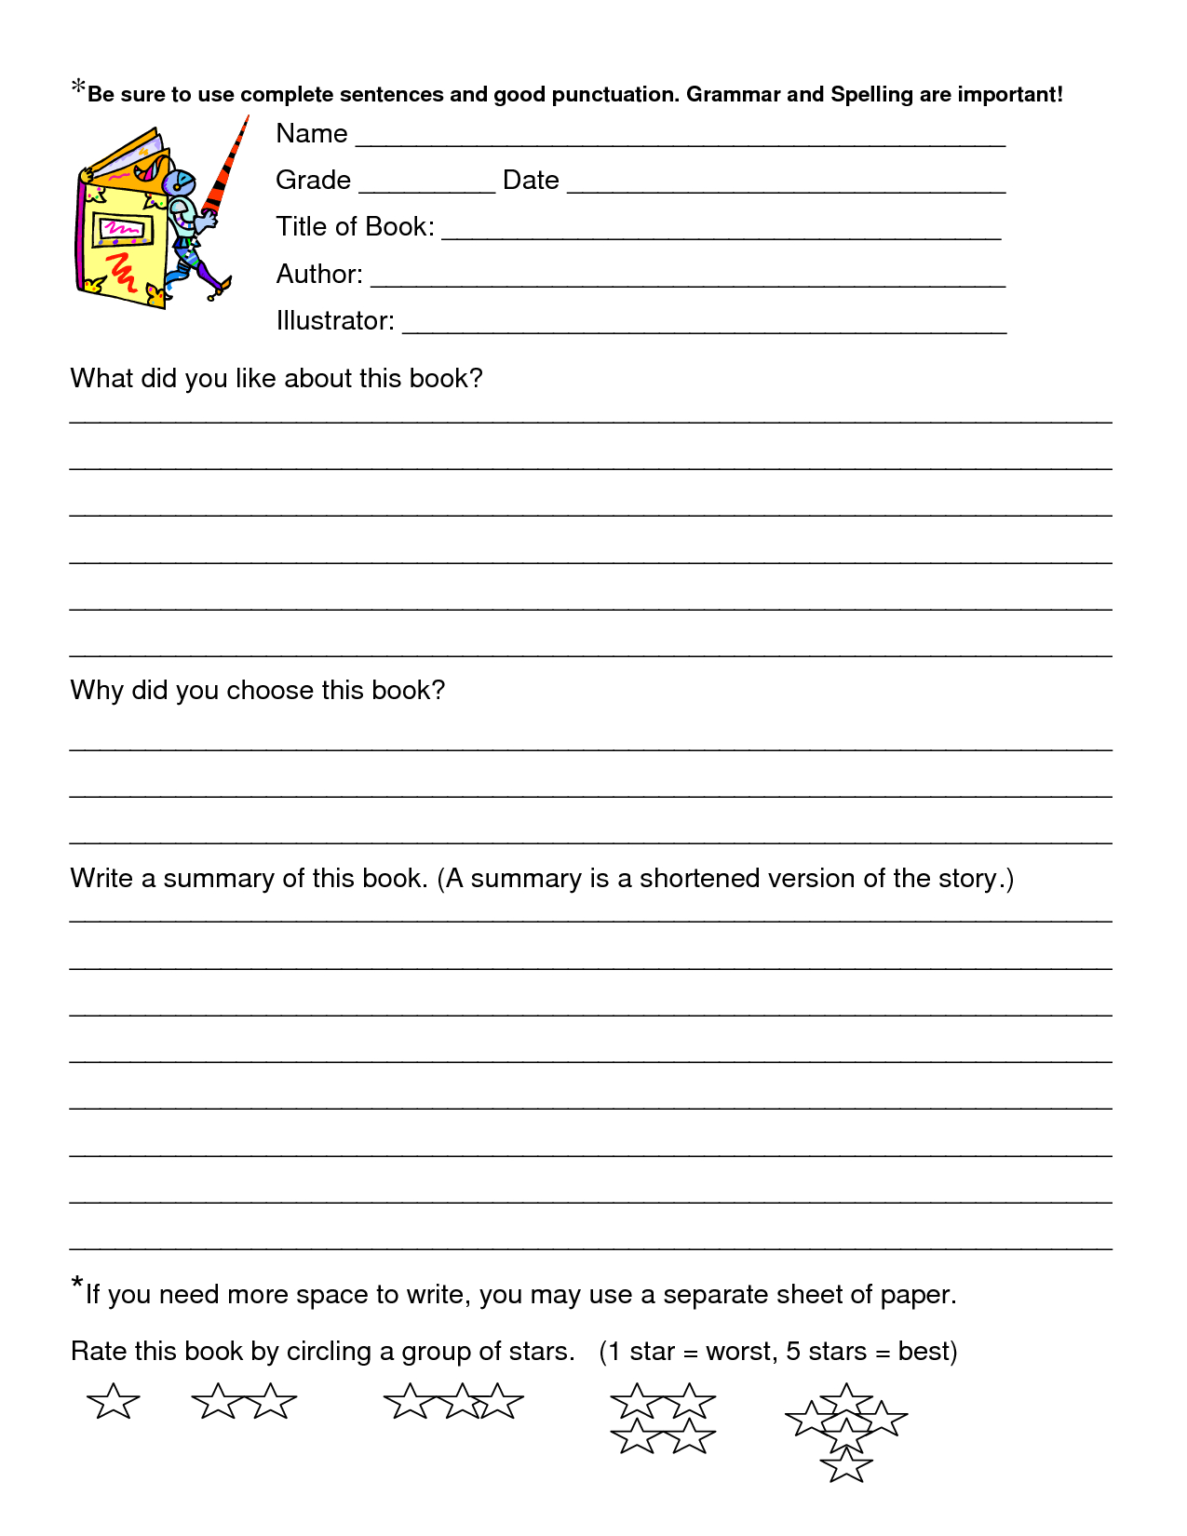 Book Review Worksheet Grade 5